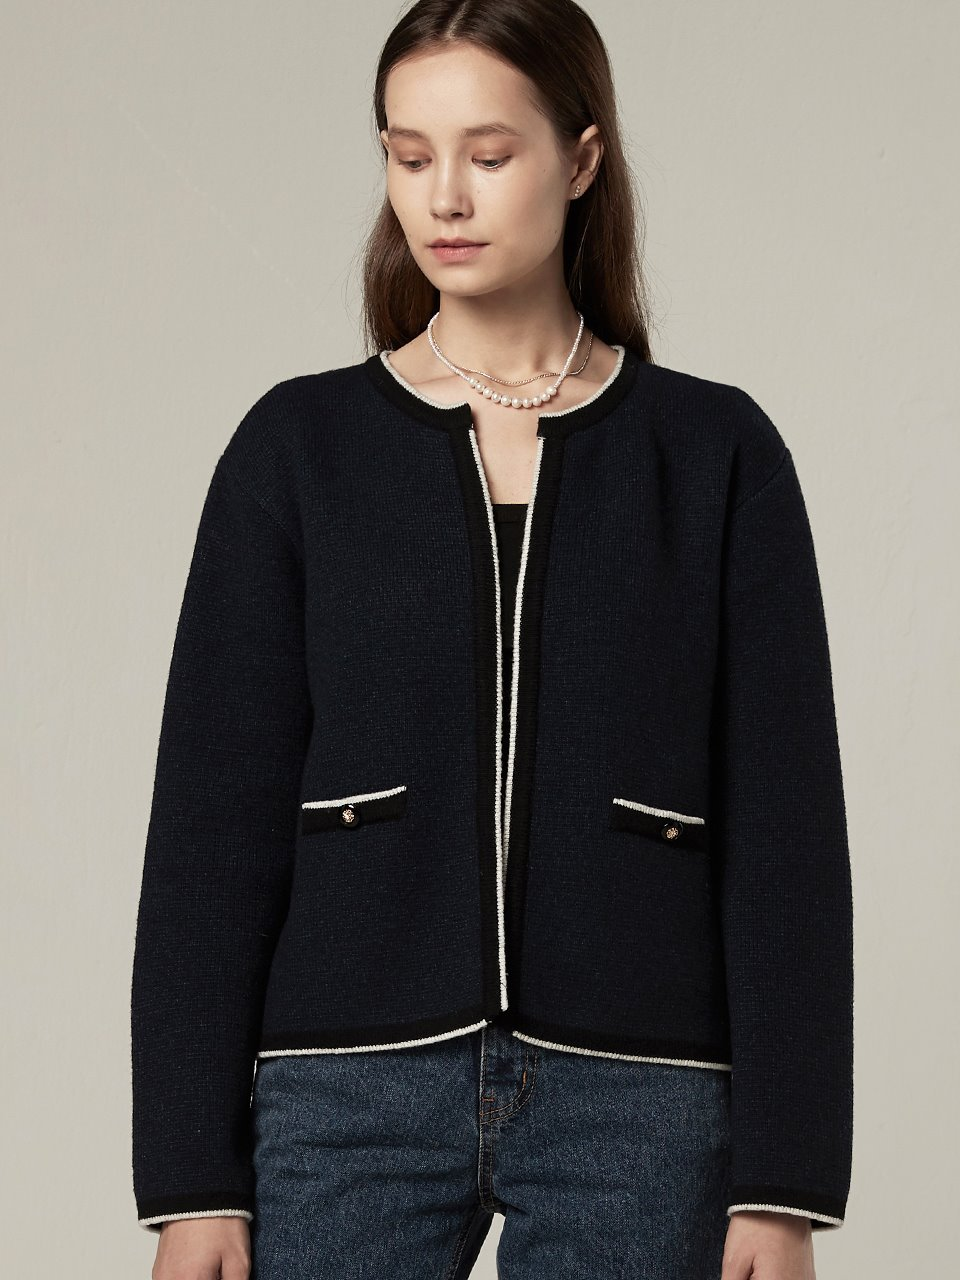 Cashmere blended knit cardigan - Navy